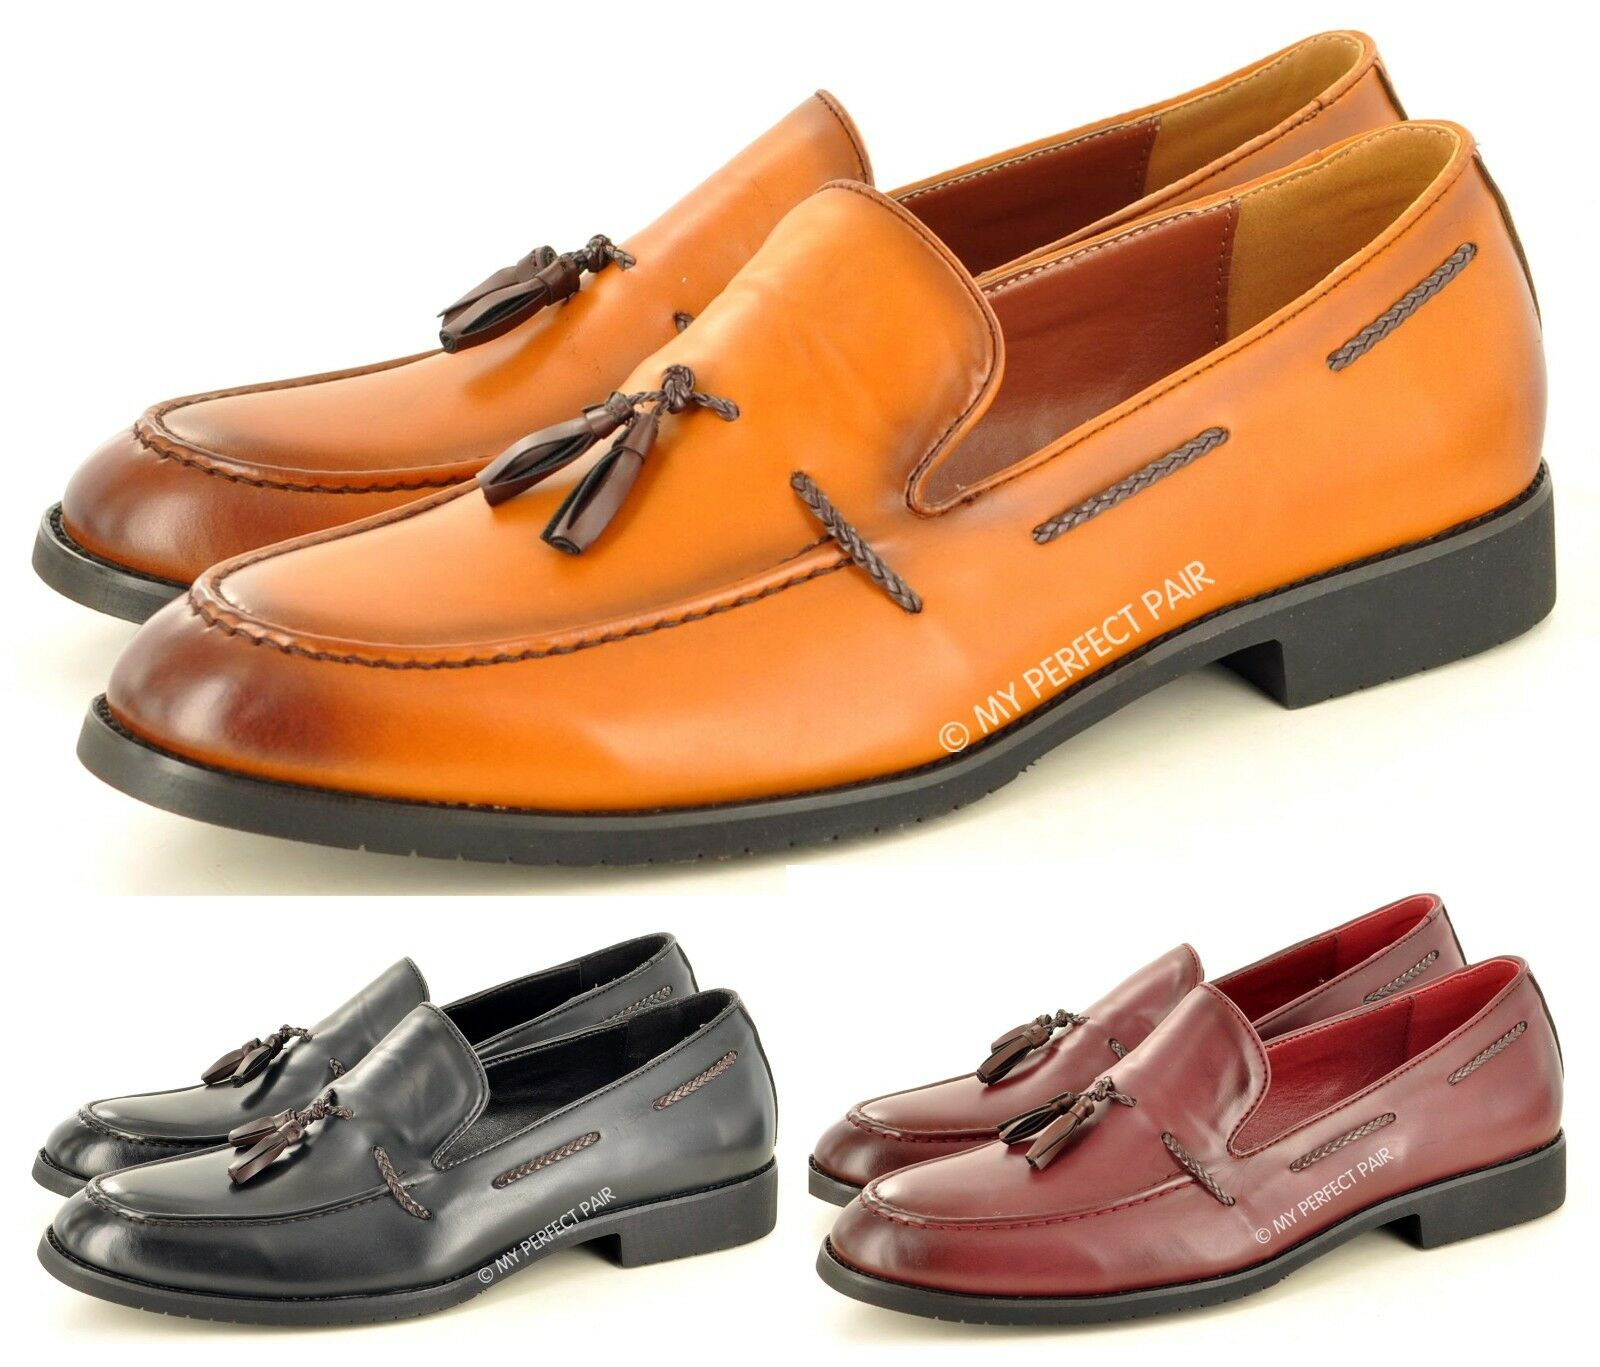 Men's Style Faux Leather Retro Vintage Style Men's Smart Casual Tassel Loafers Shoes 487b45